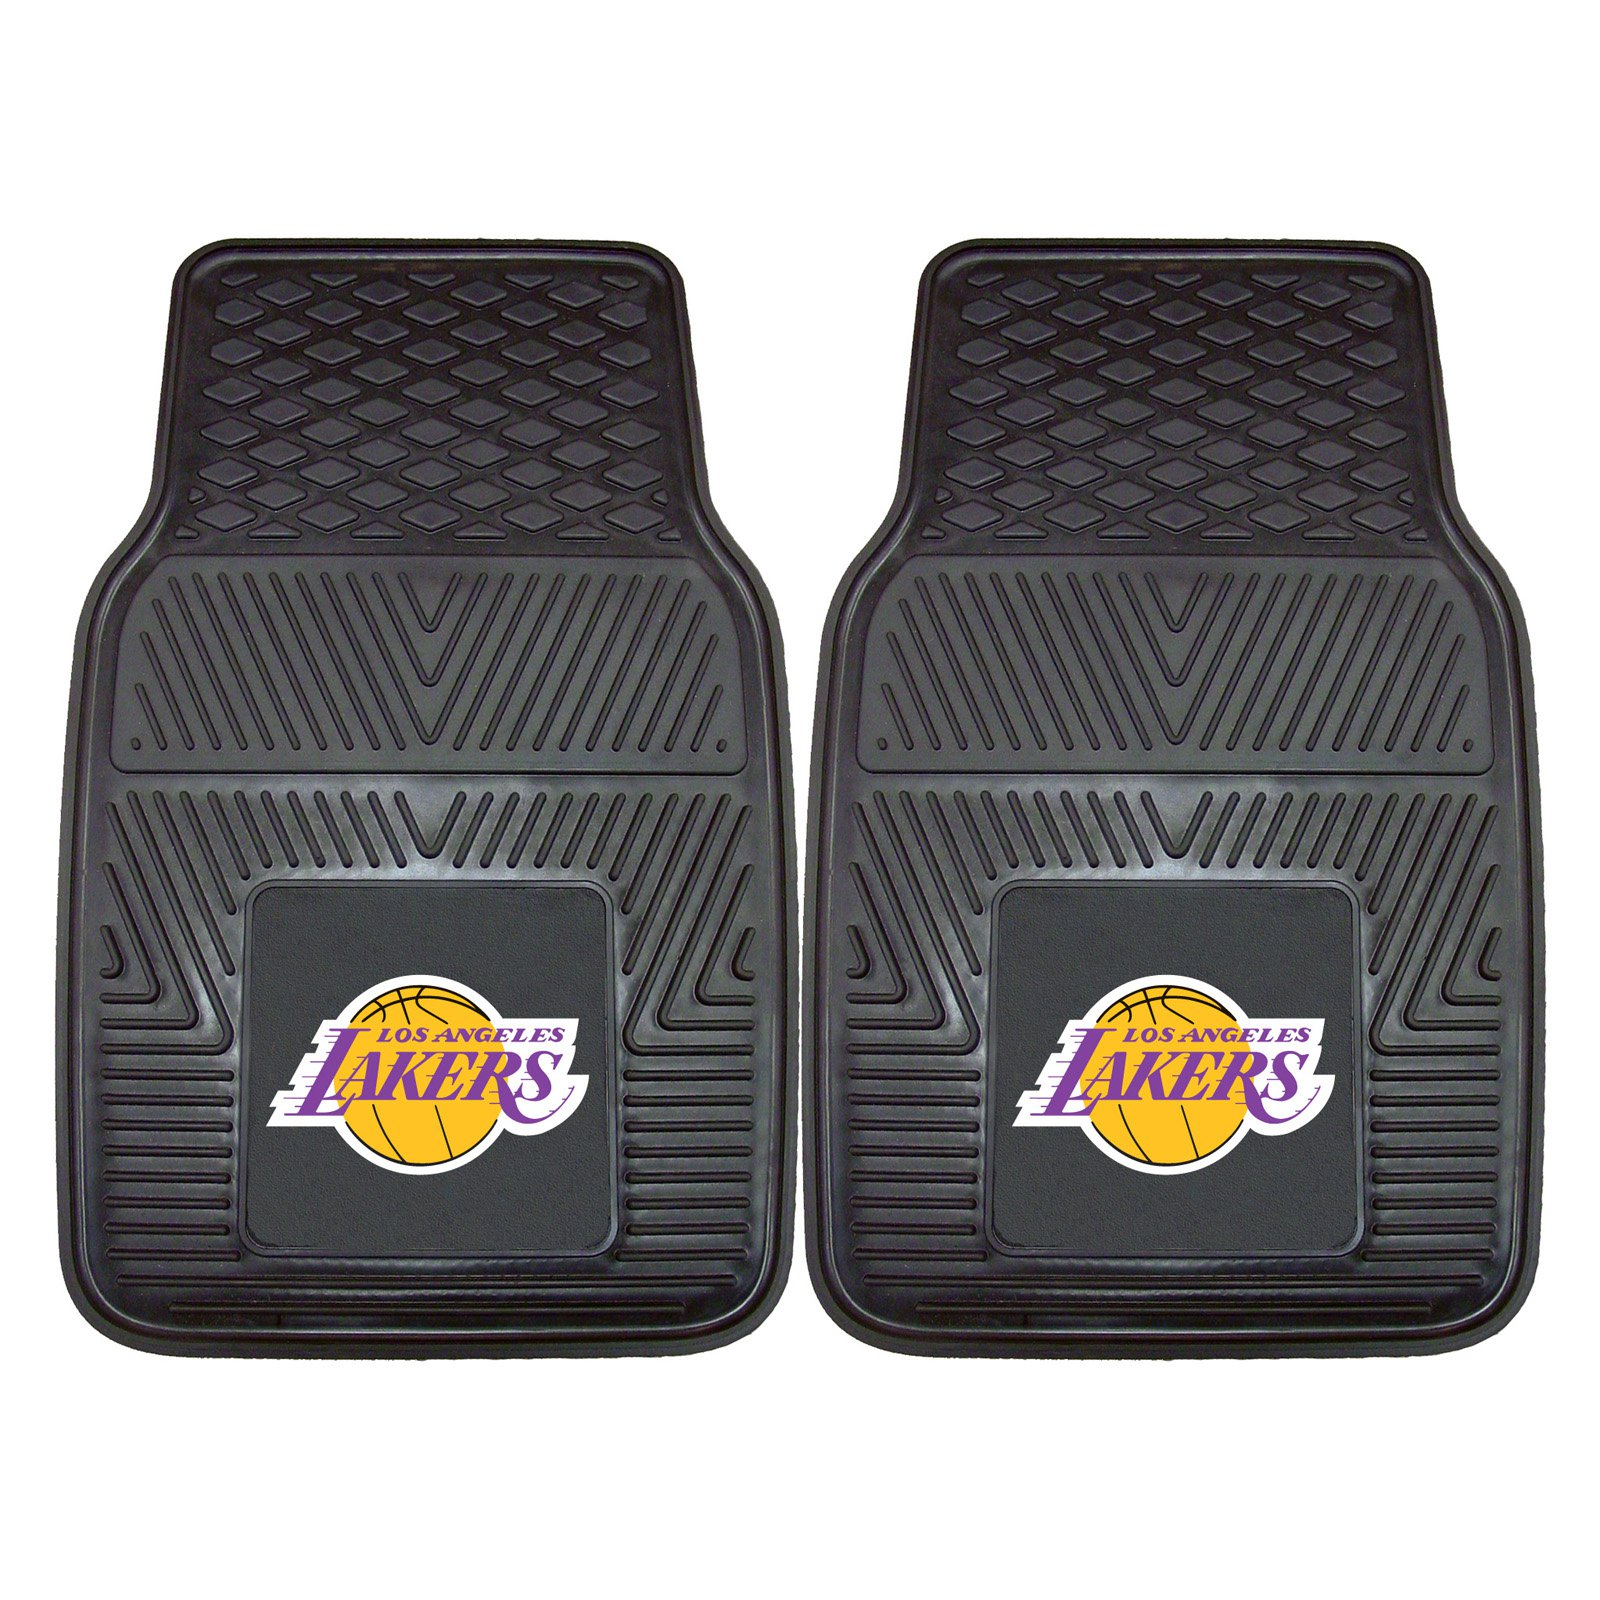 Los Angeles Lakers Heavy Duty Vinyl Car Mats - Set of 2